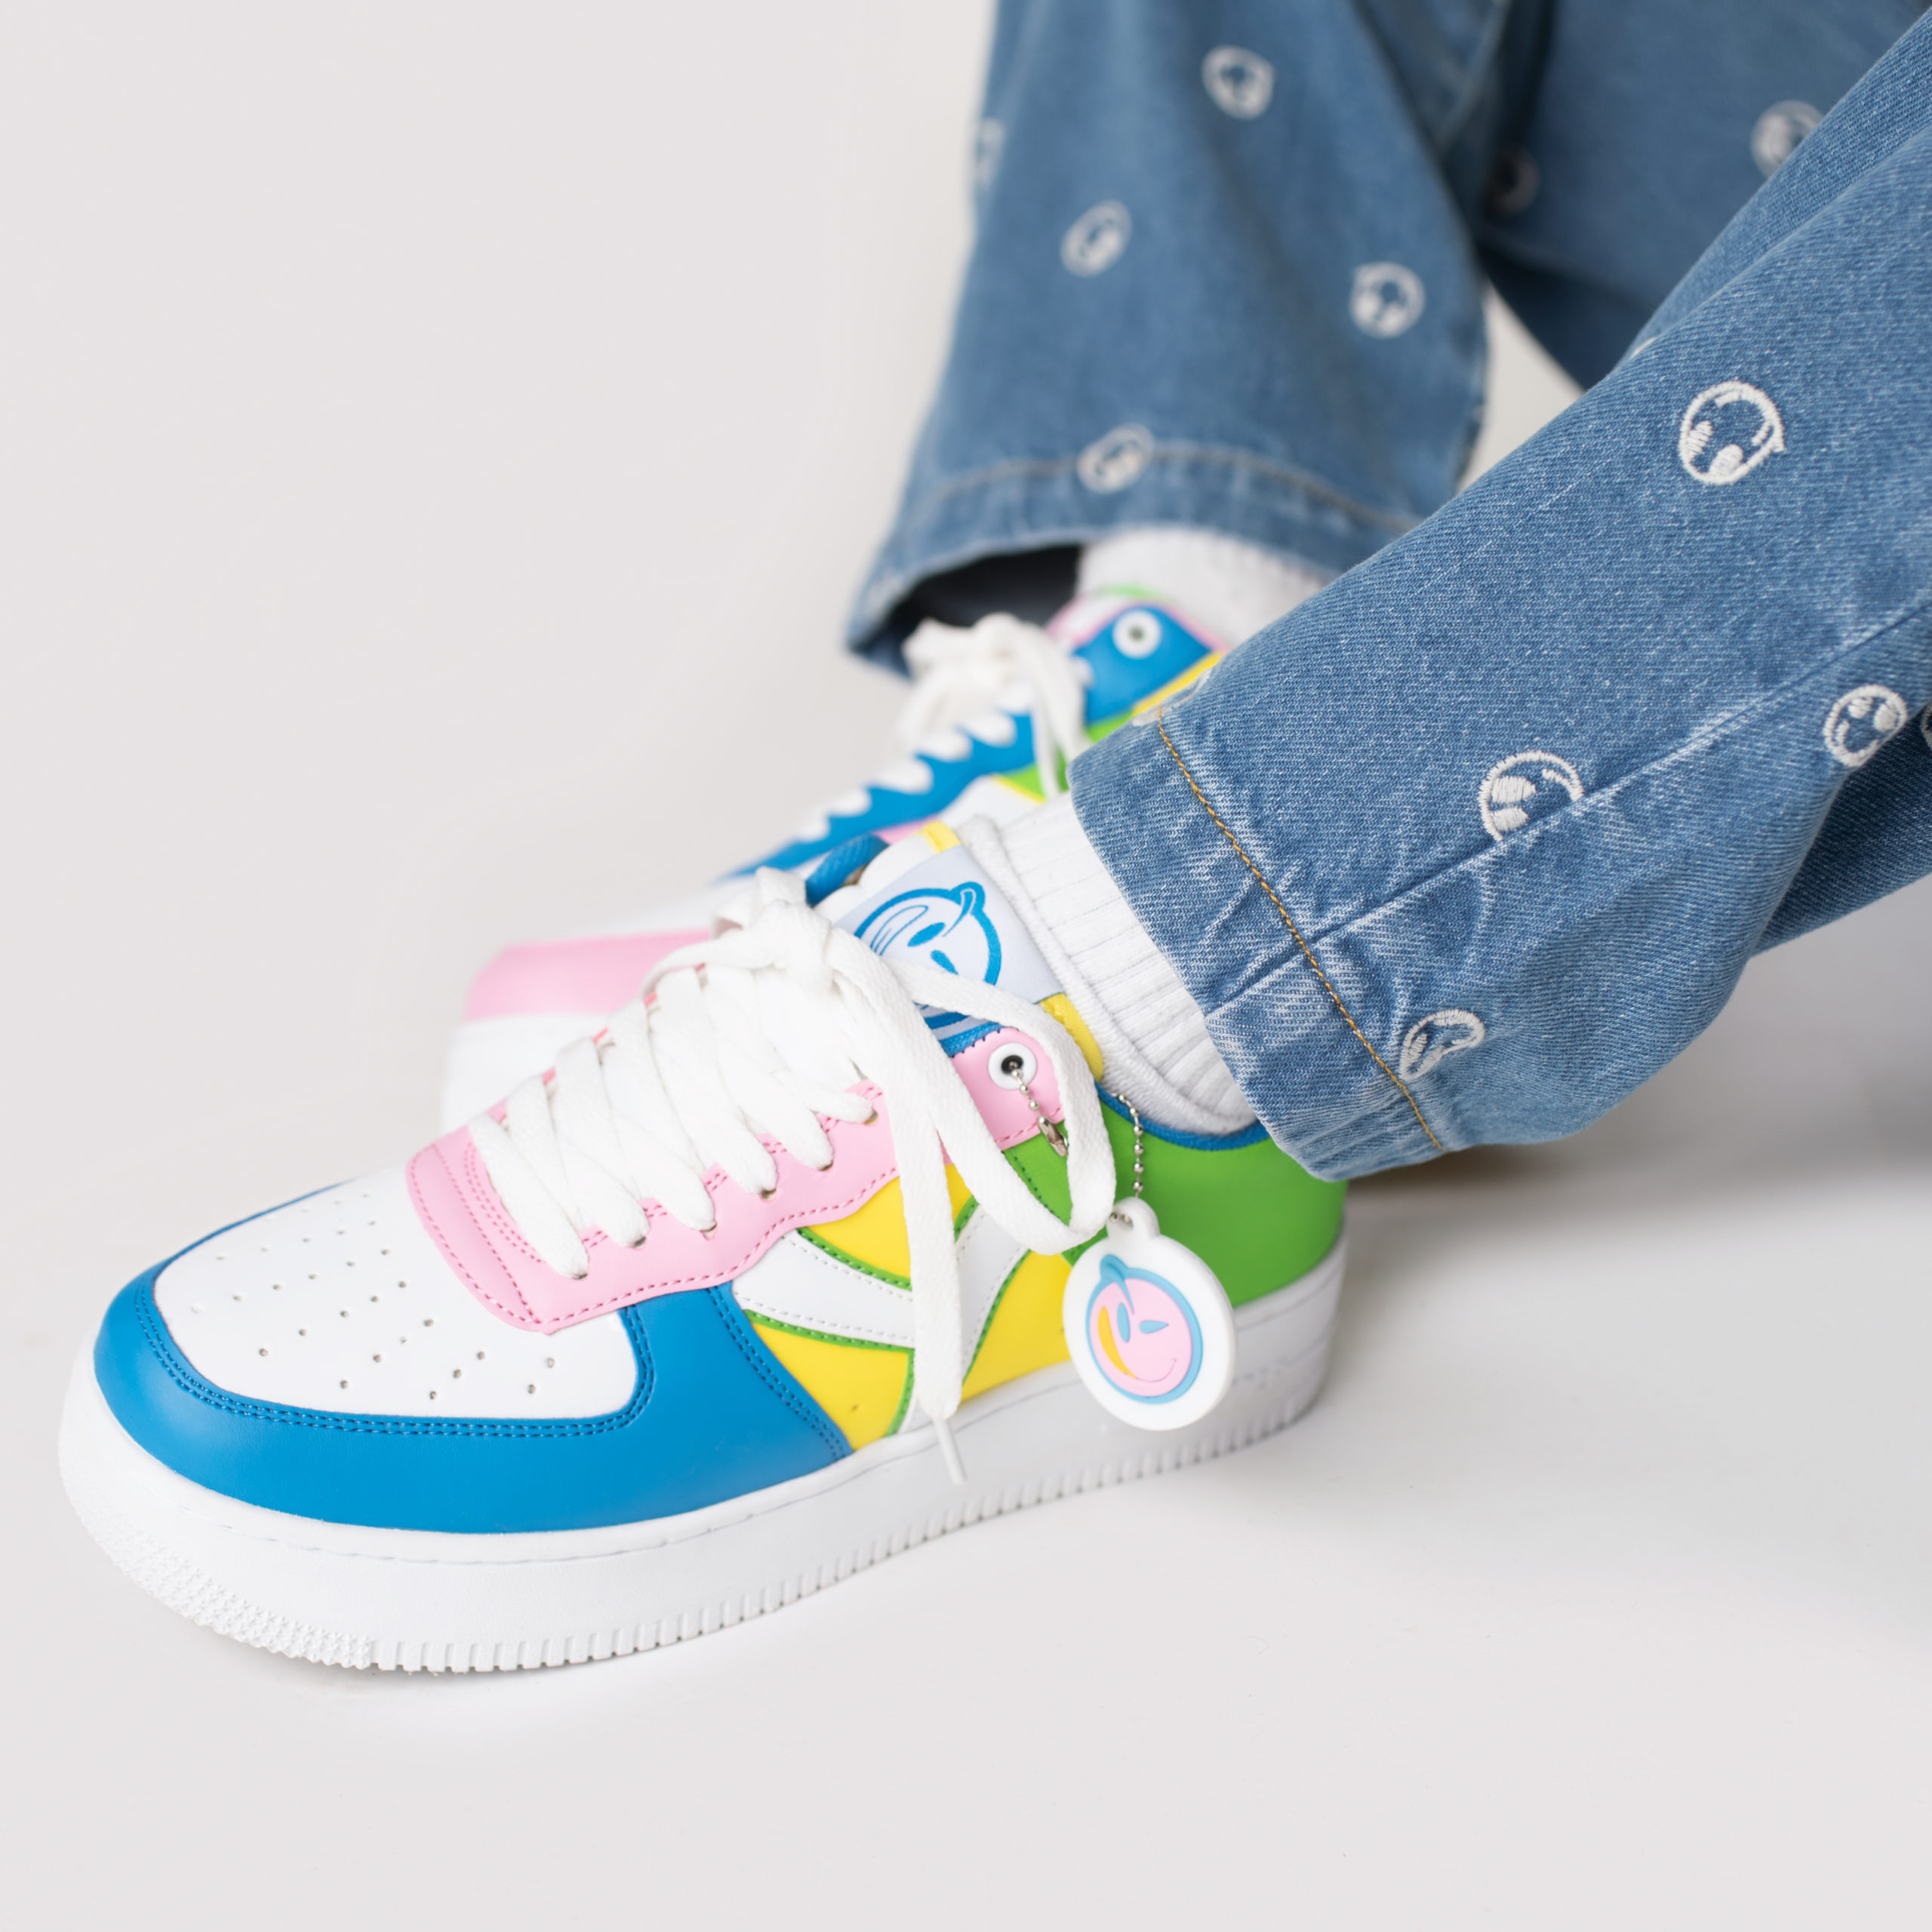 YUMS sneakers